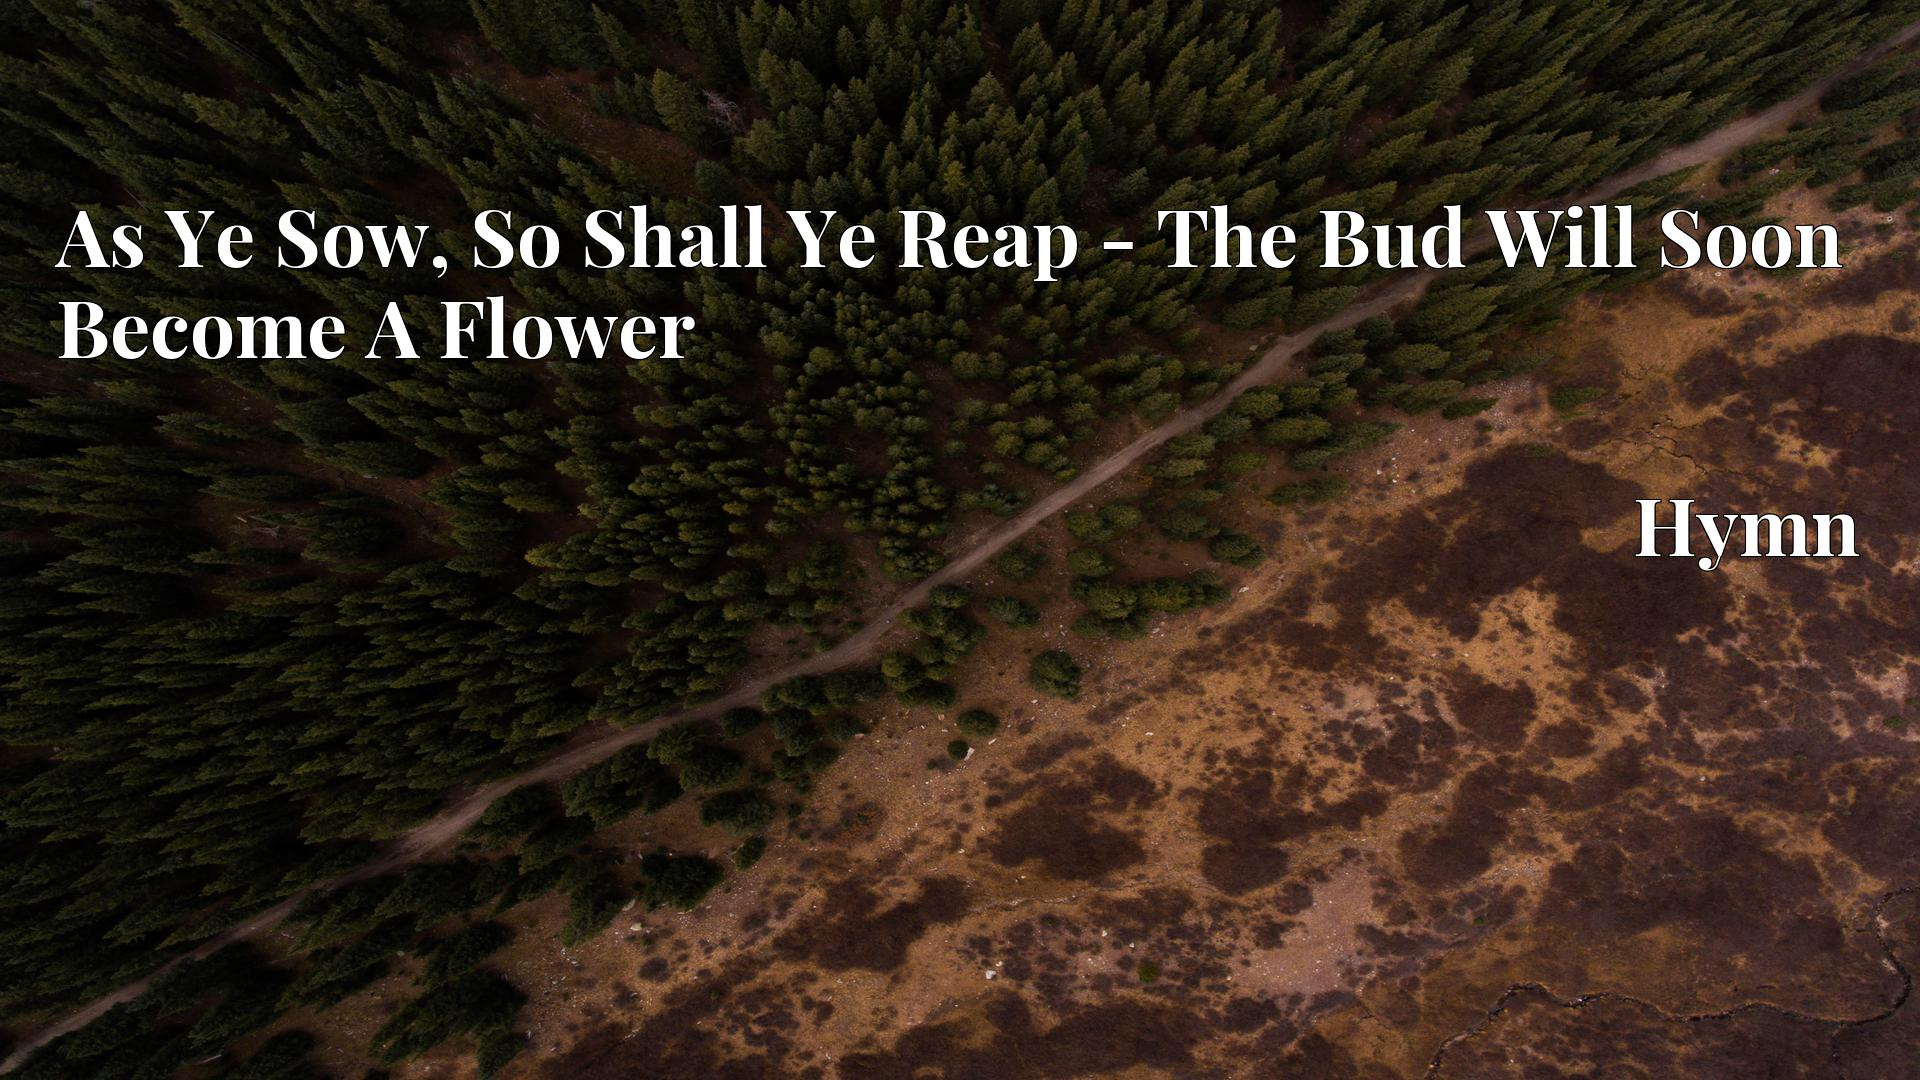 As Ye Sow, So Shall Ye Reap - The Bud Will Soon Become A Flower - Hymn